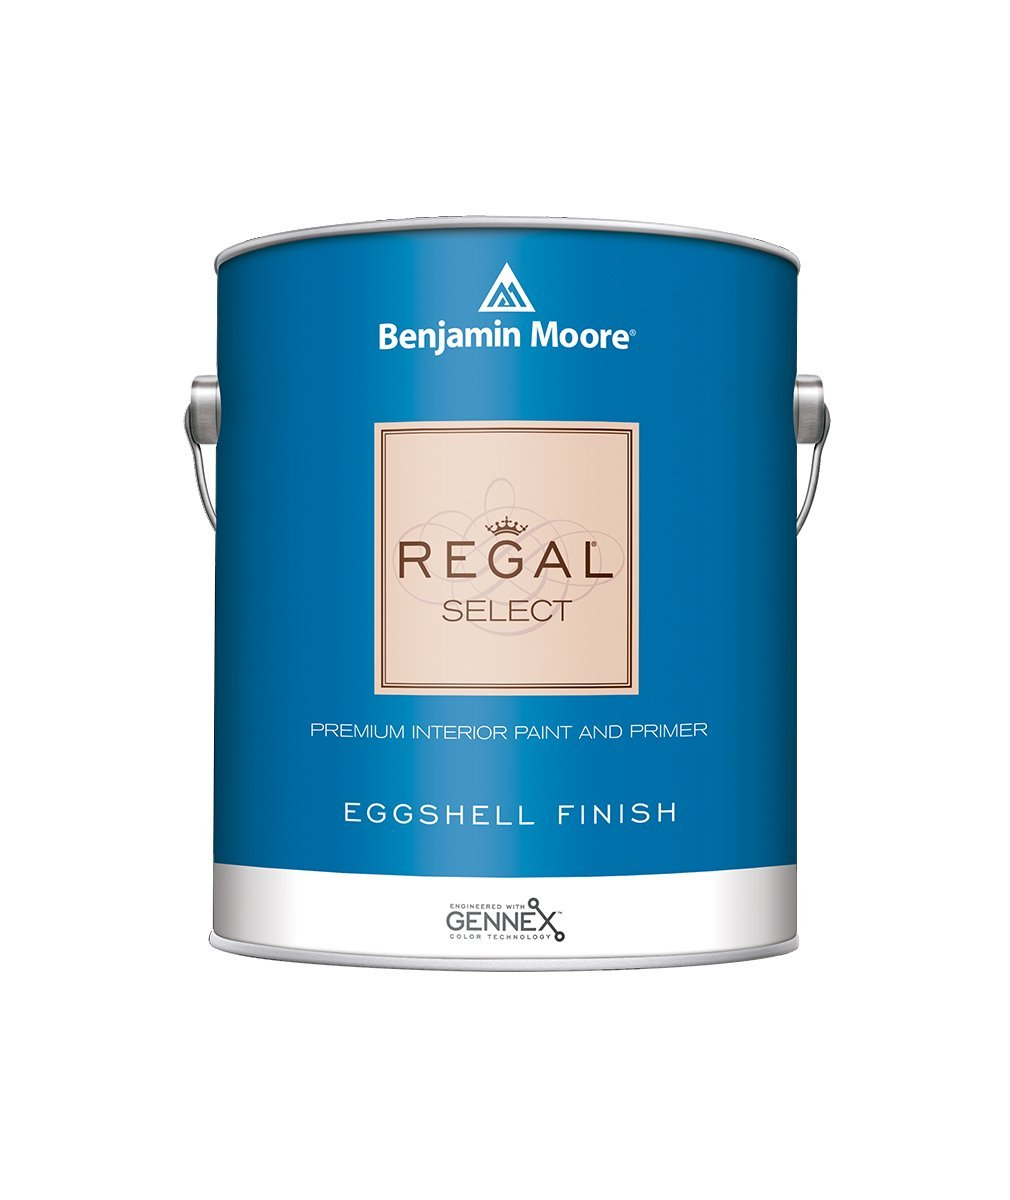 Benjamin Moore Regal Select Eggshell Paint , available at Johnson Paint & Maine Paint in MA, NH & ME.